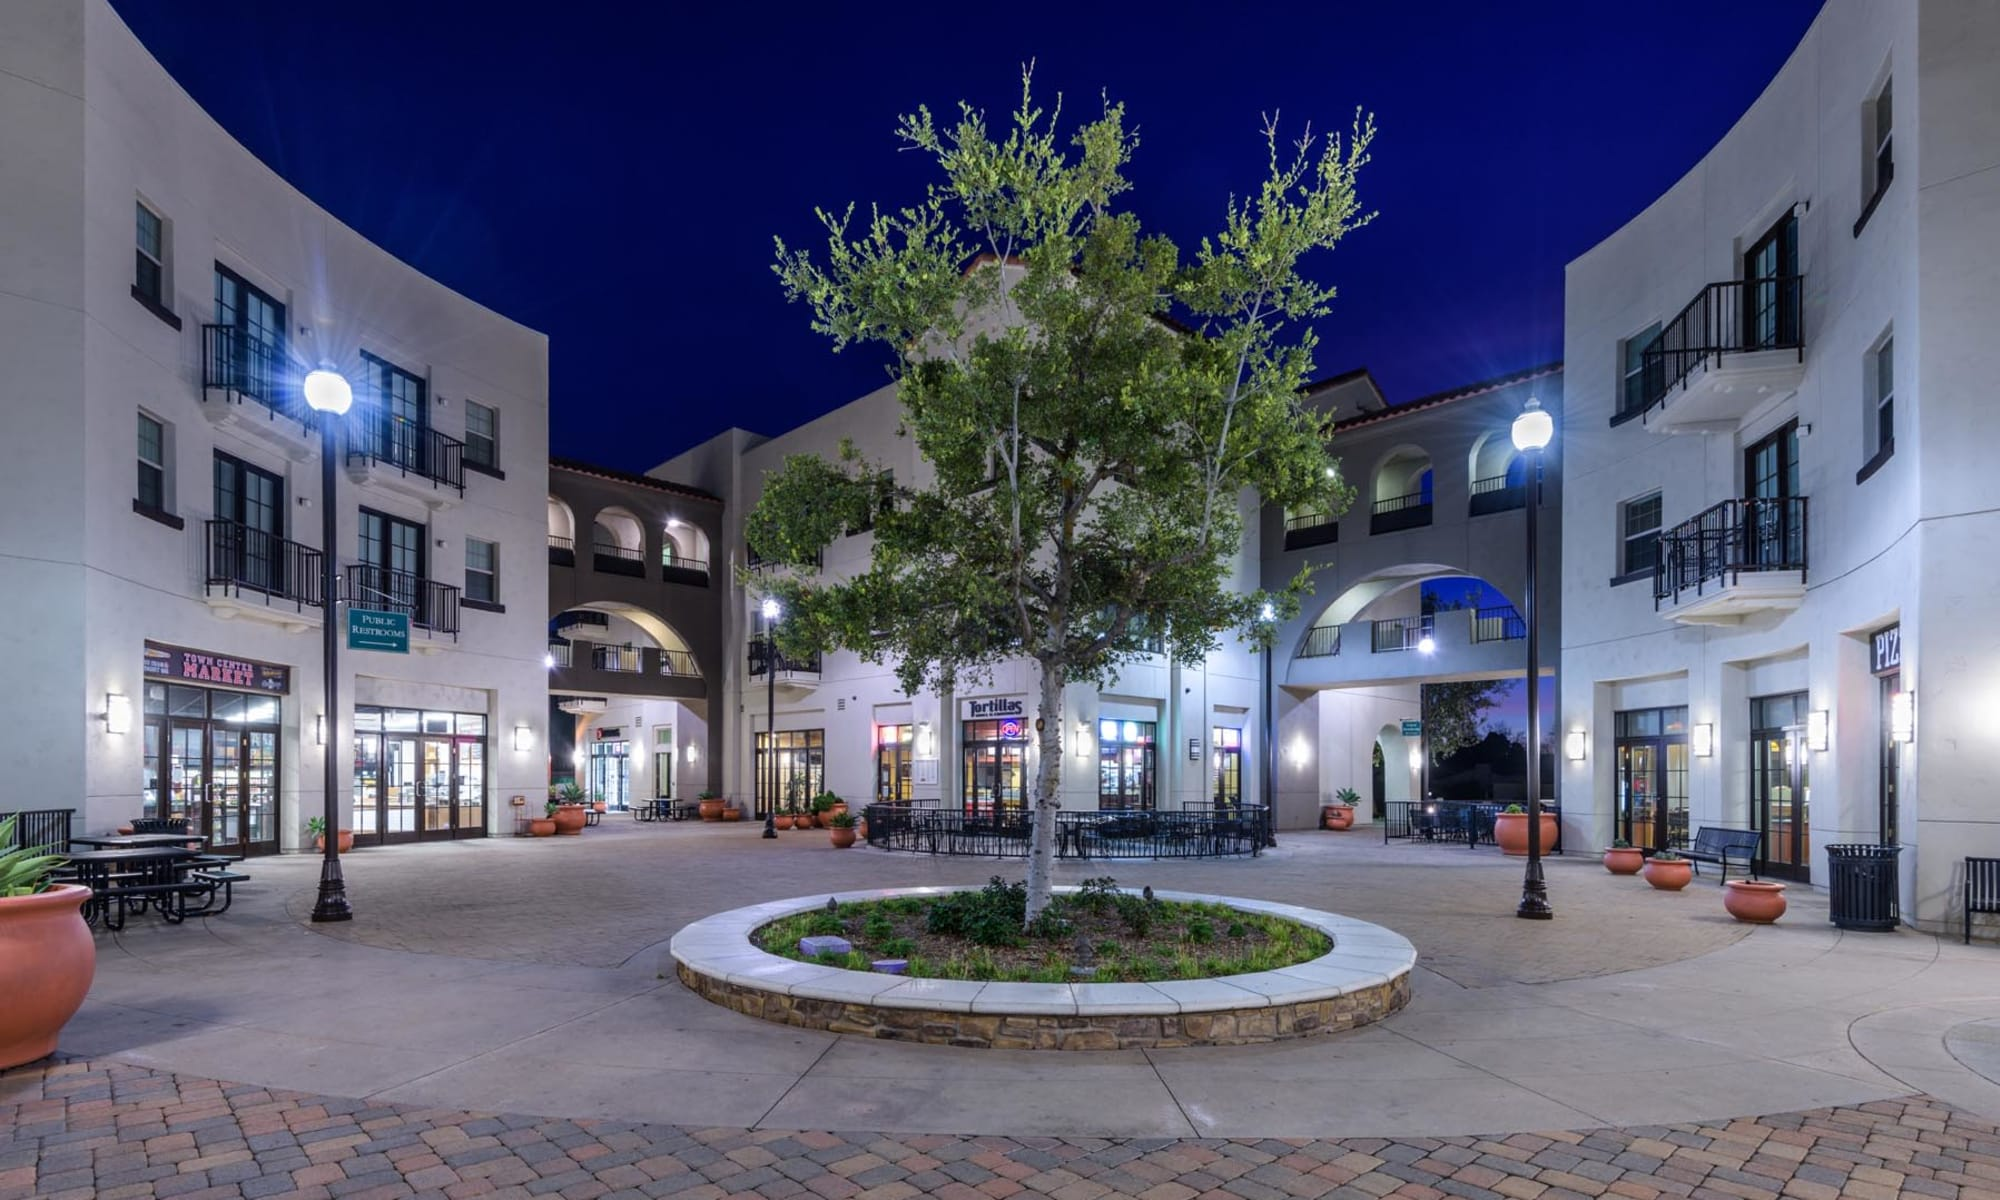 Early evening view of the courtyard with a mature tree in the center at Mission Hills in Camarillo, California